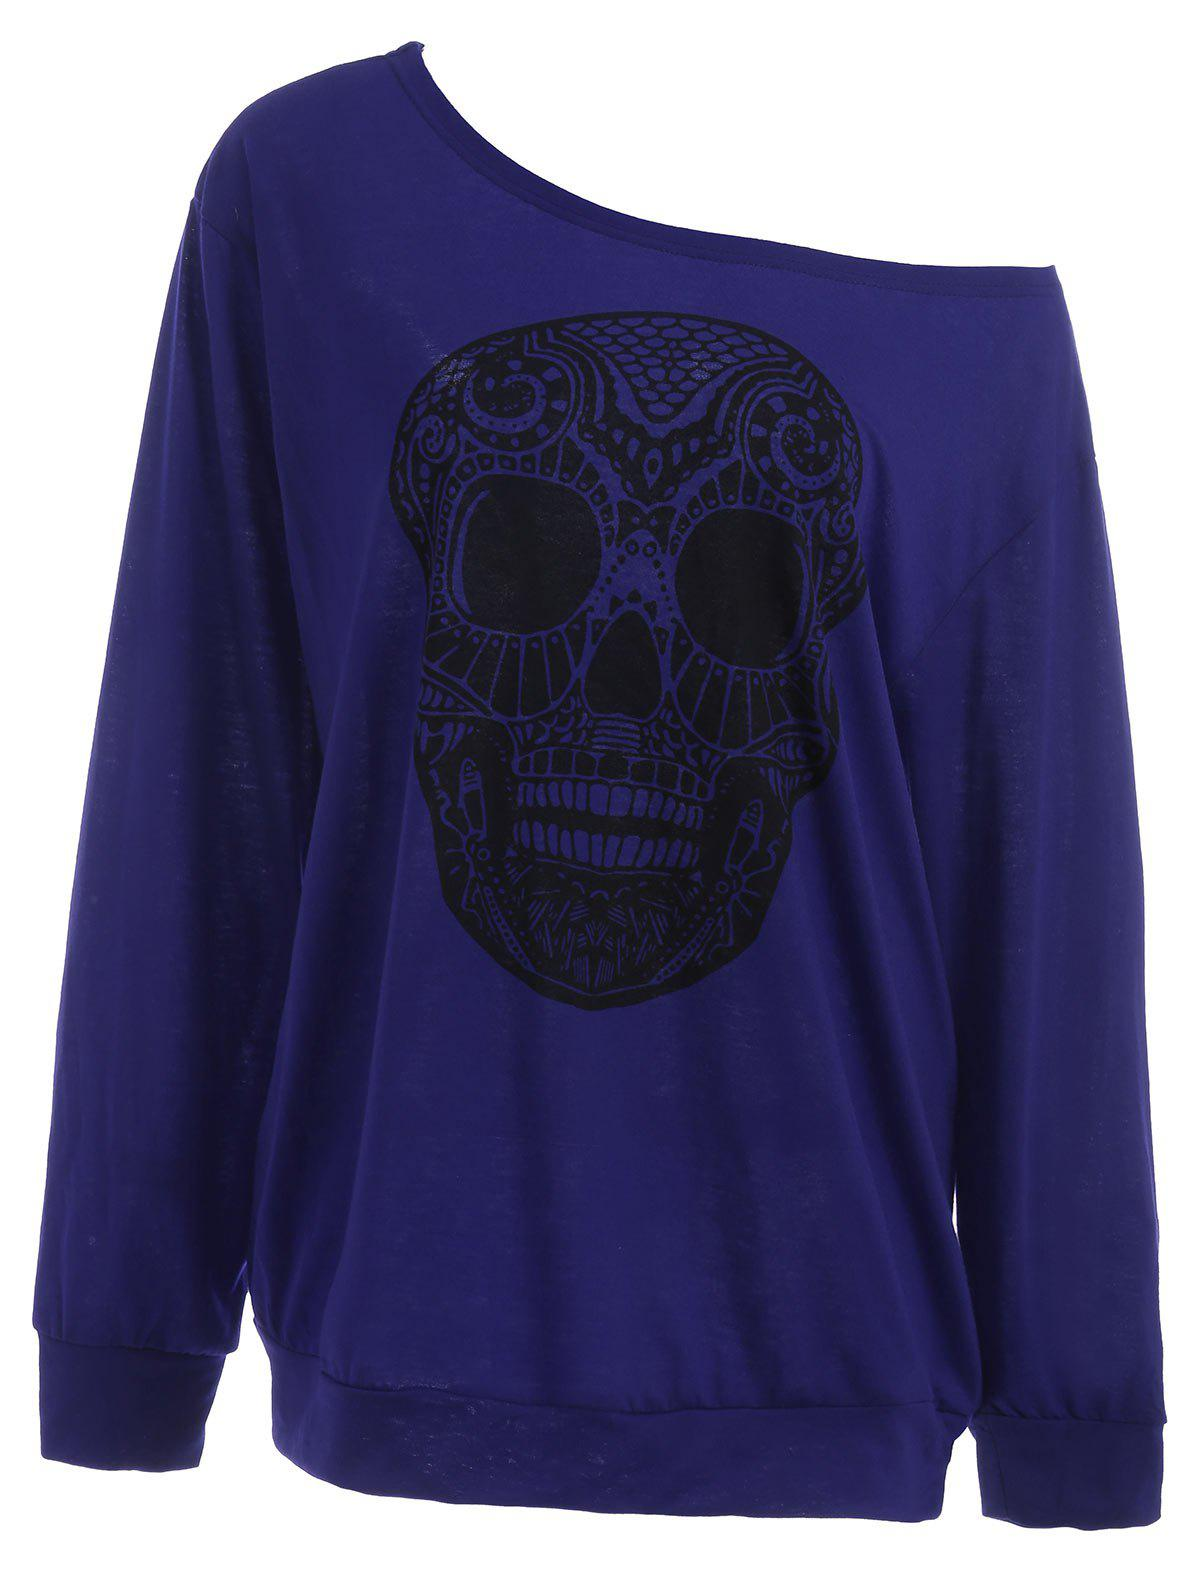 Plus Size Skull Skew Collar SweatshirtWOMEN<br><br>Size: 3XL; Color: BLUE; Material: Polyester,Spandex; Shirt Length: Long; Sleeve Length: Full; Style: Casual; Pattern Style: Skulls; Season: Fall,Spring; Weight: 0.3700kg; Package Contents: 1 x Sweatshirt;